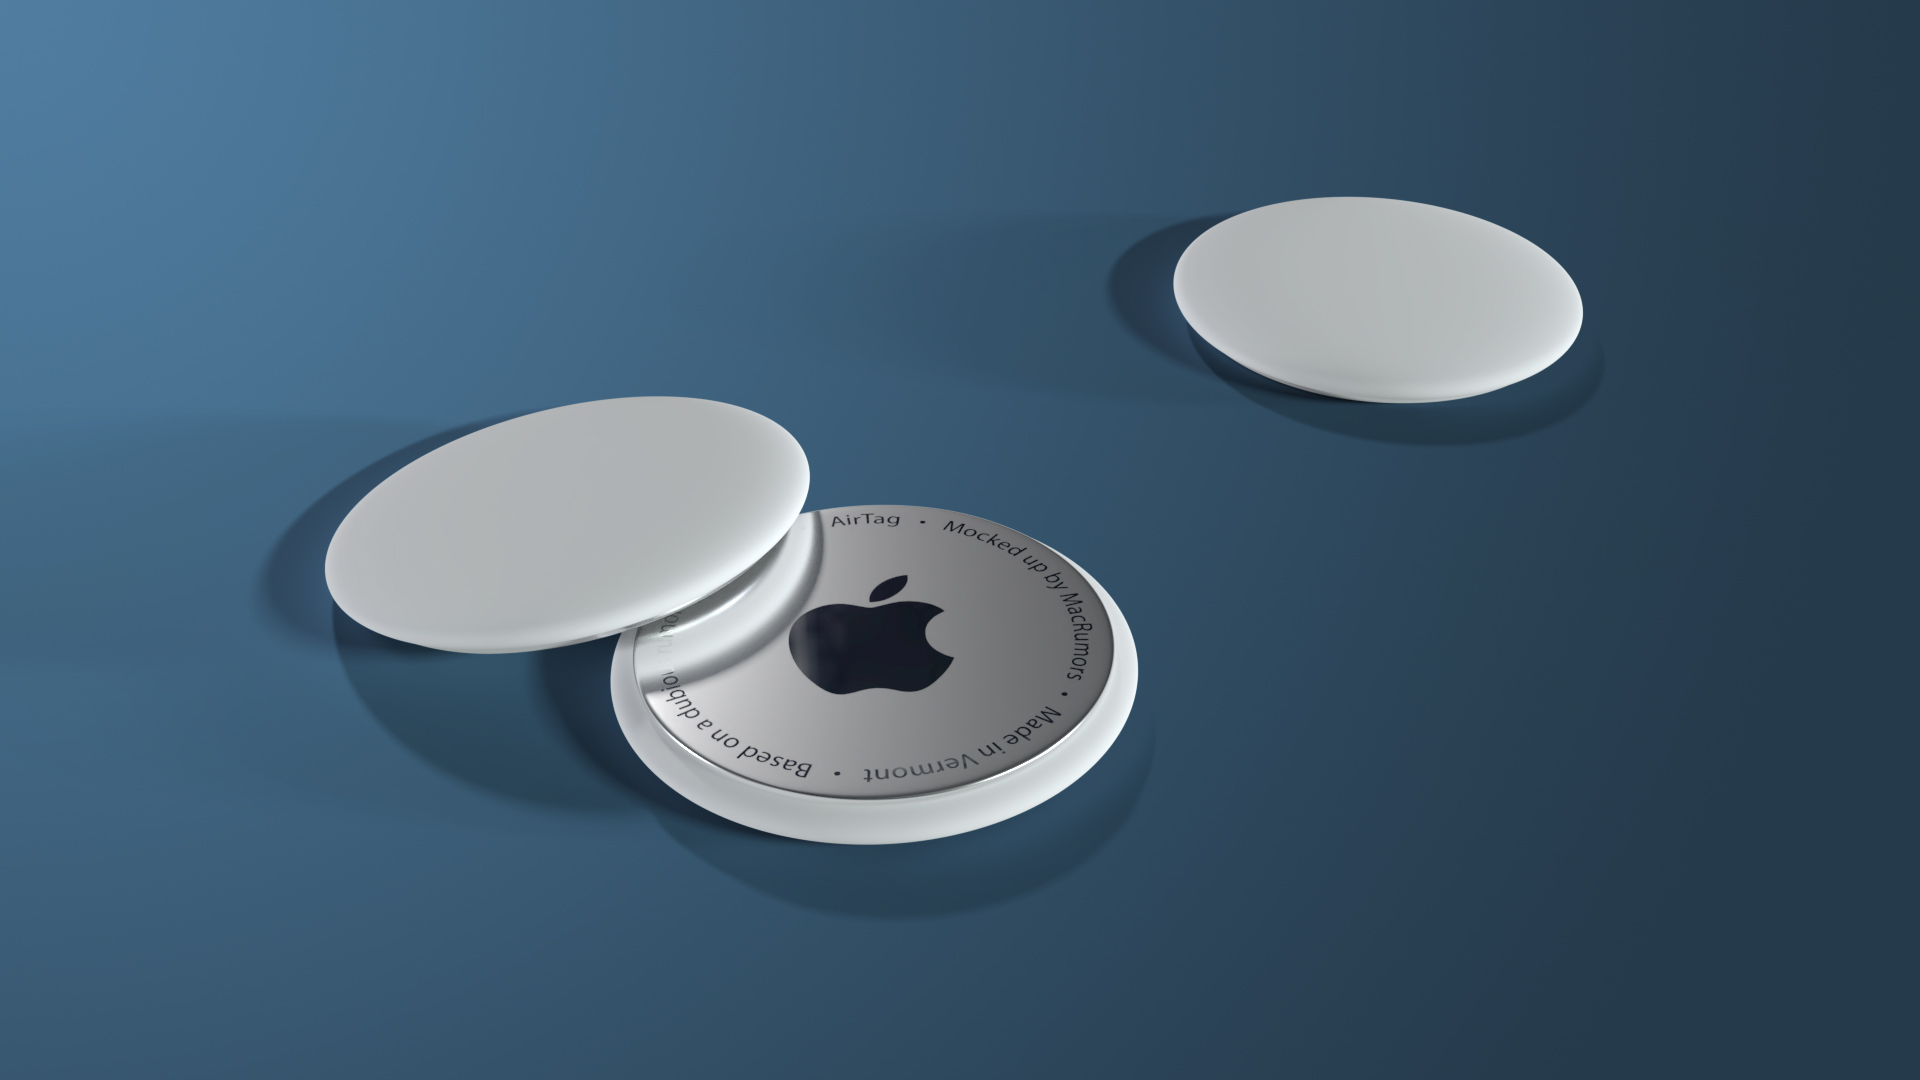 sản phẩm mới của apple spring loaded airtags techtimes